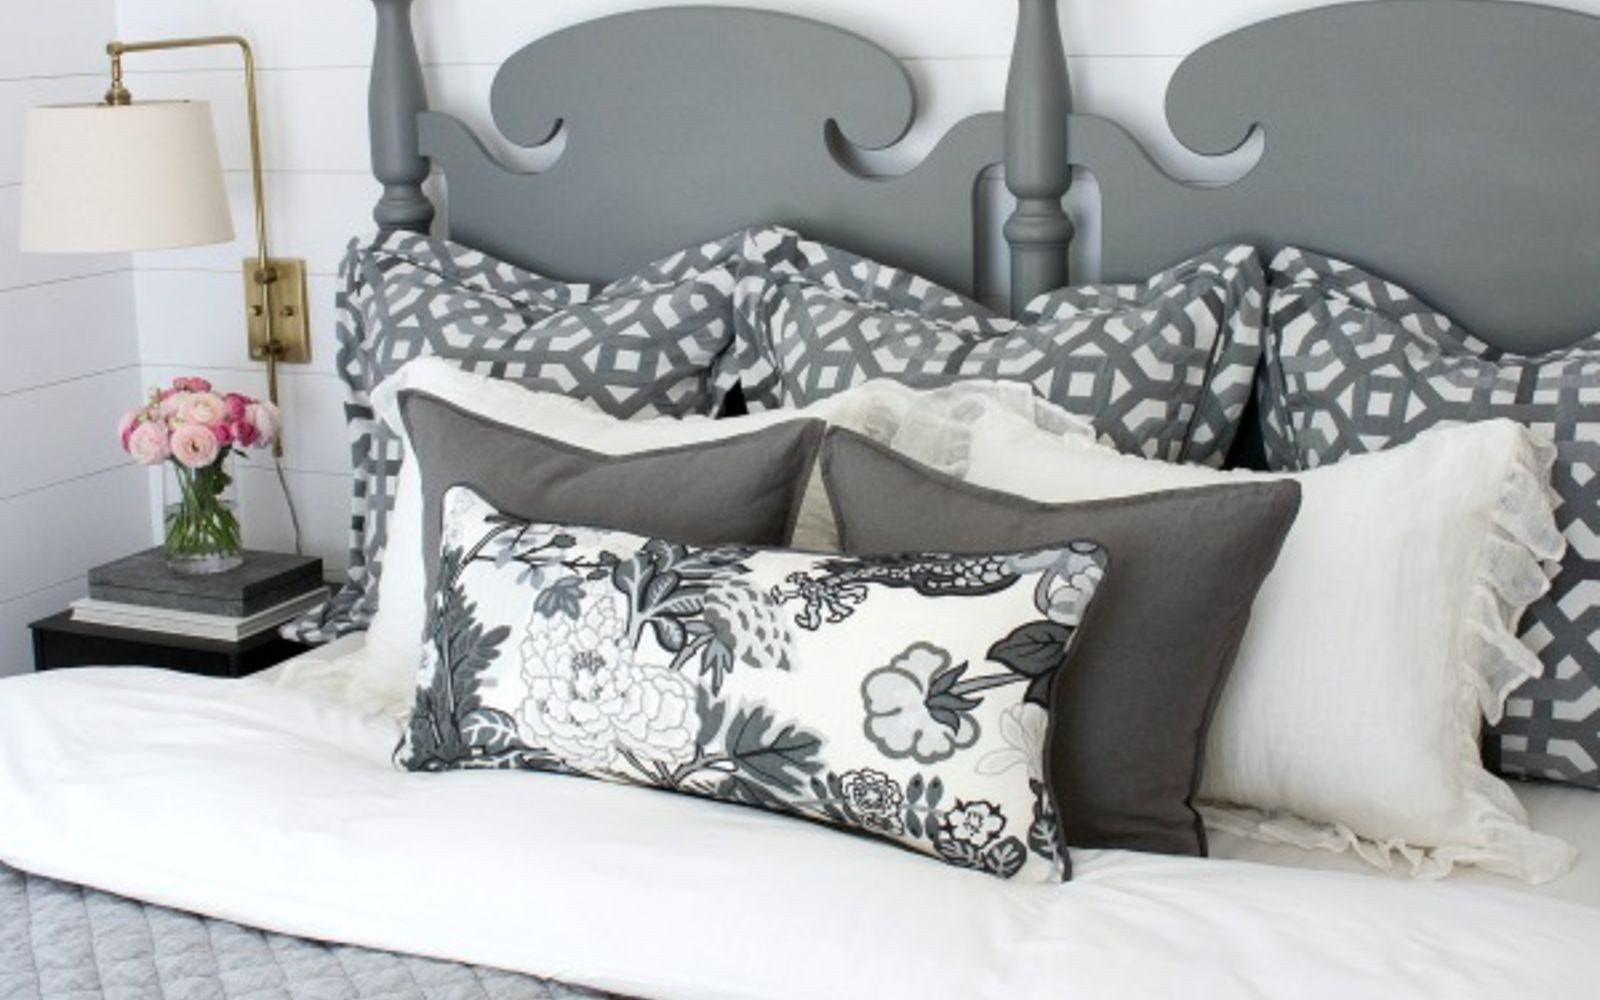 s these are the diy headboard ideas you ve been dreaming of, Remodel A Craigslist Find To This Stunner